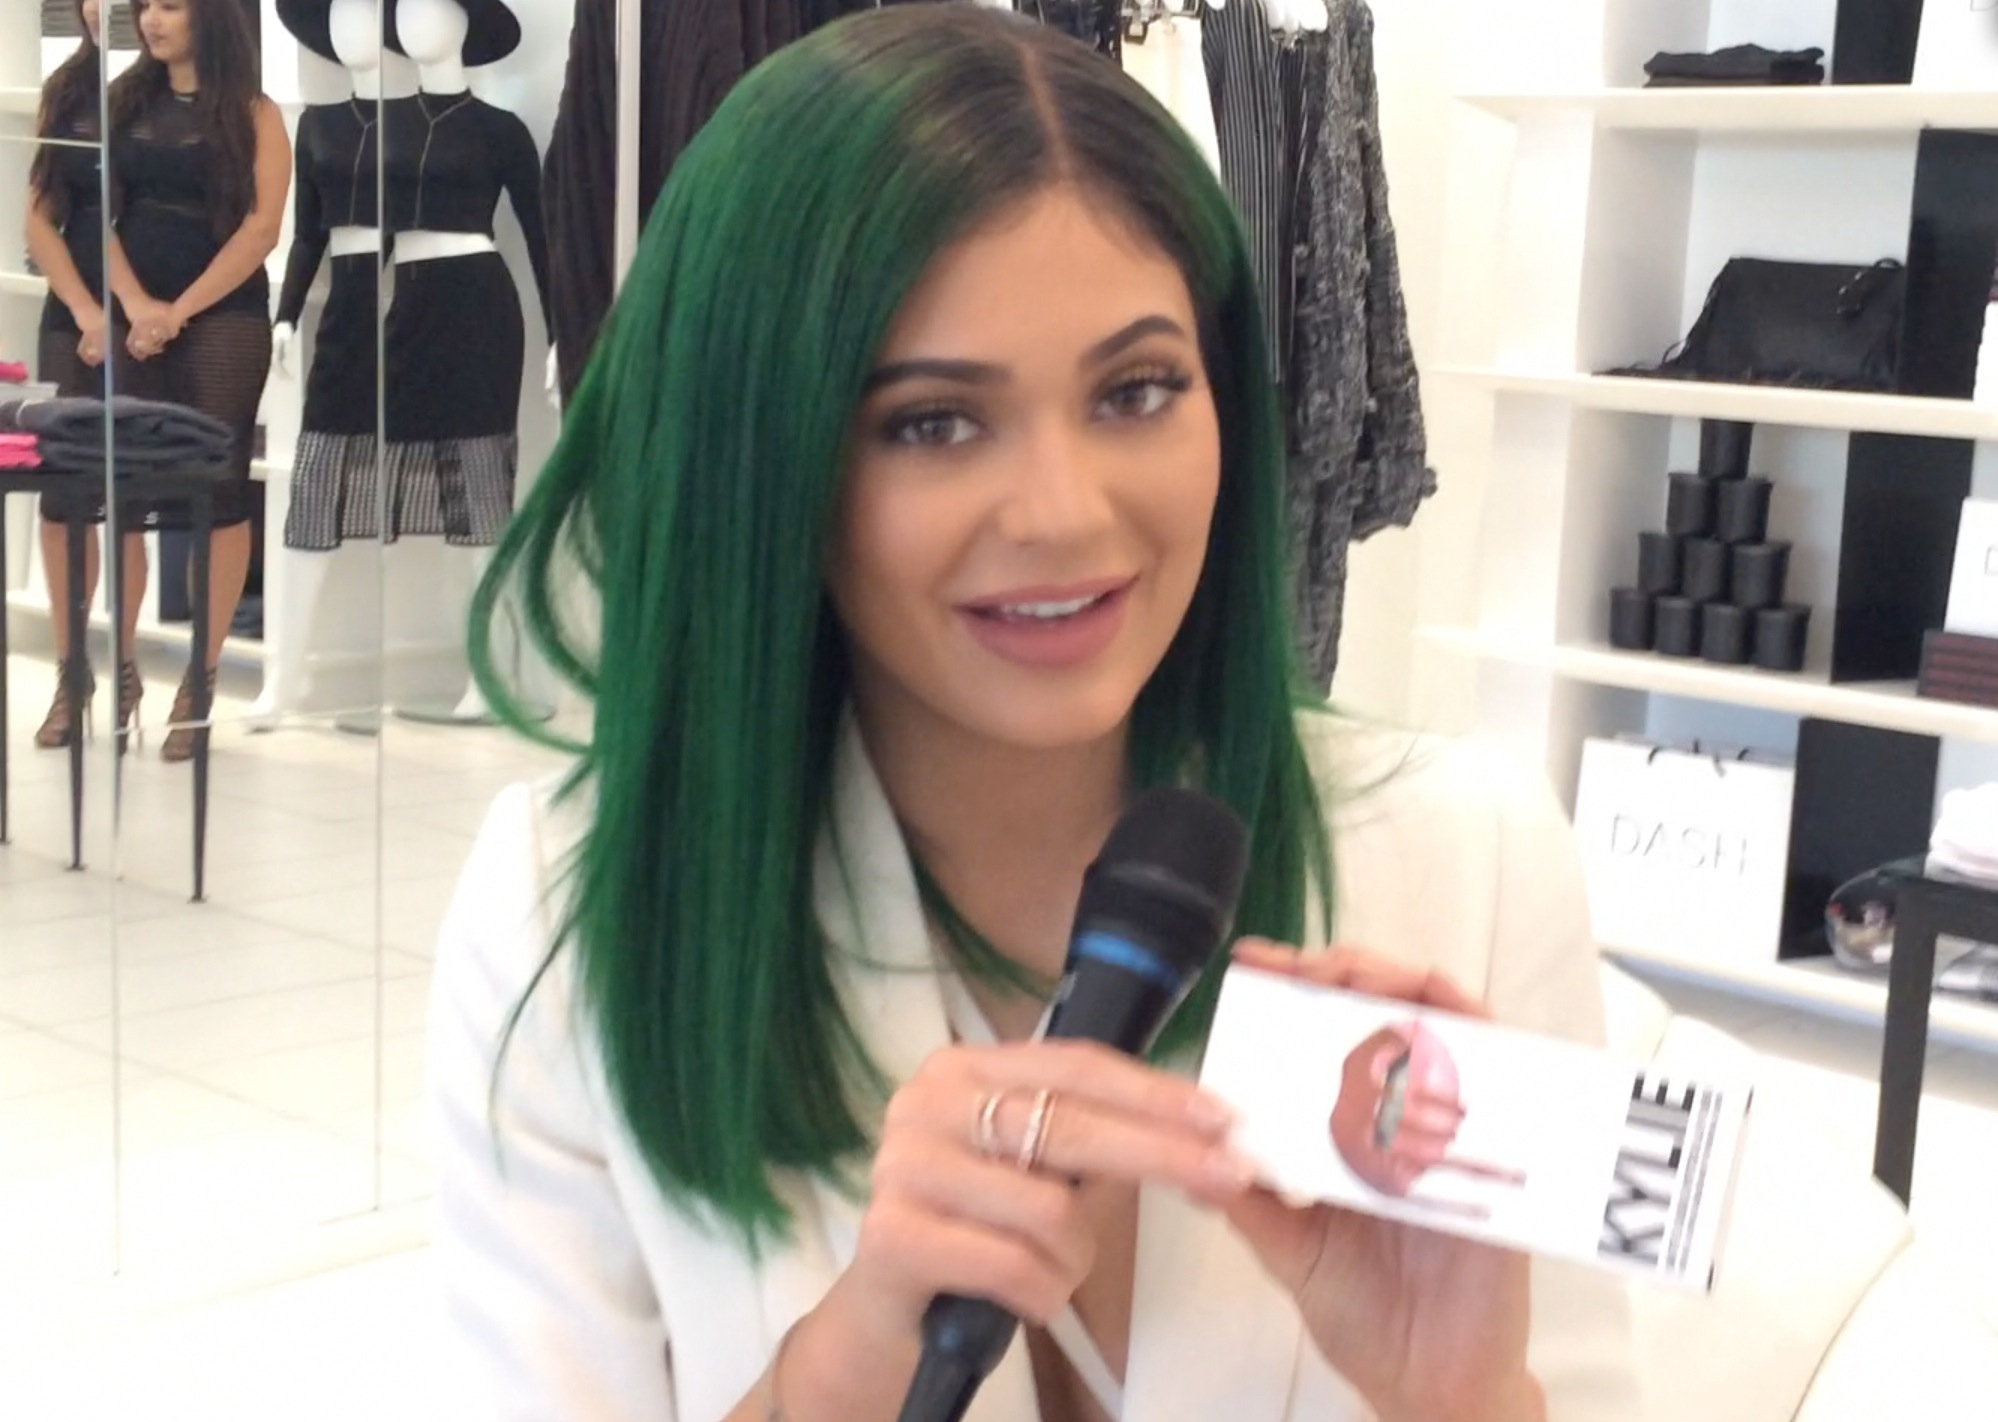 Kylie Jenner shows us her (sold-out) 'Lip Kit'